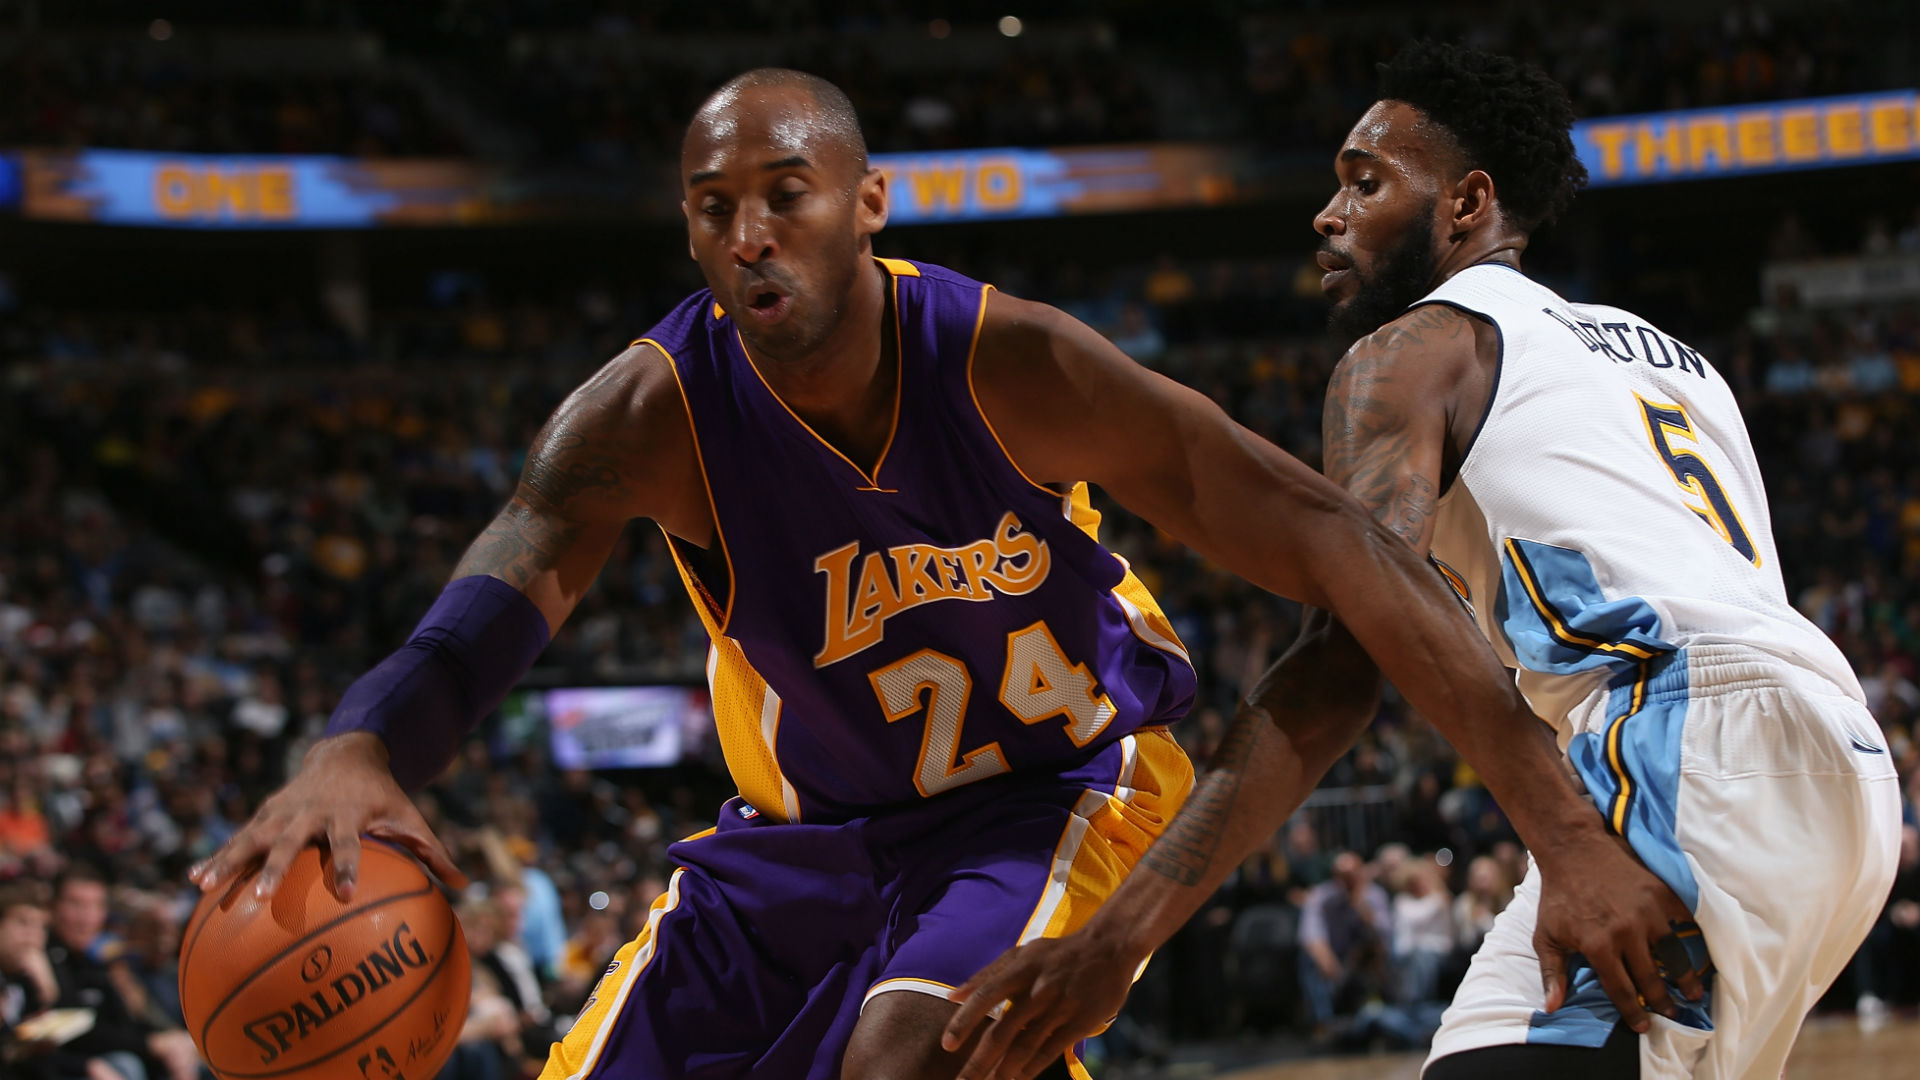 kobe-bryant-122315-getty-ftr-us.jpg